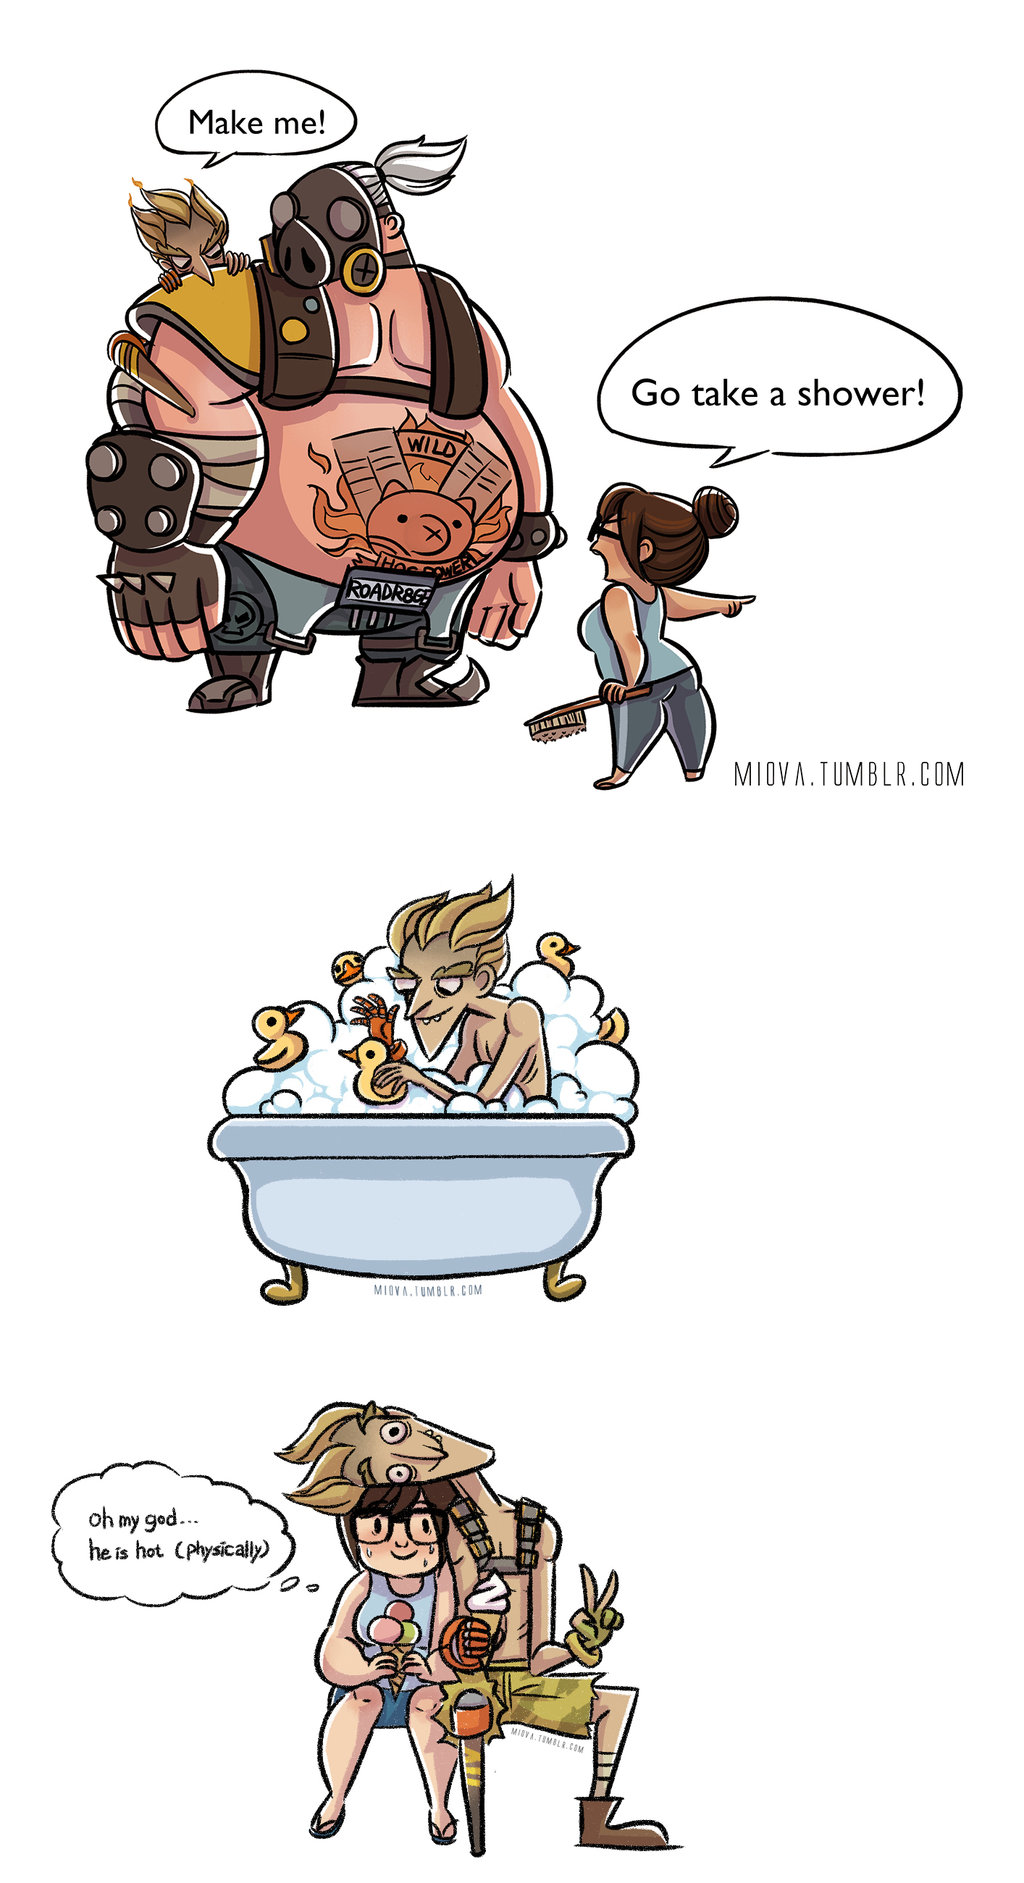 Overwatch junkrat clipart clip art freeuse library Overwatch-junkrat And Mei by miova on DeviantArt clip art freeuse library